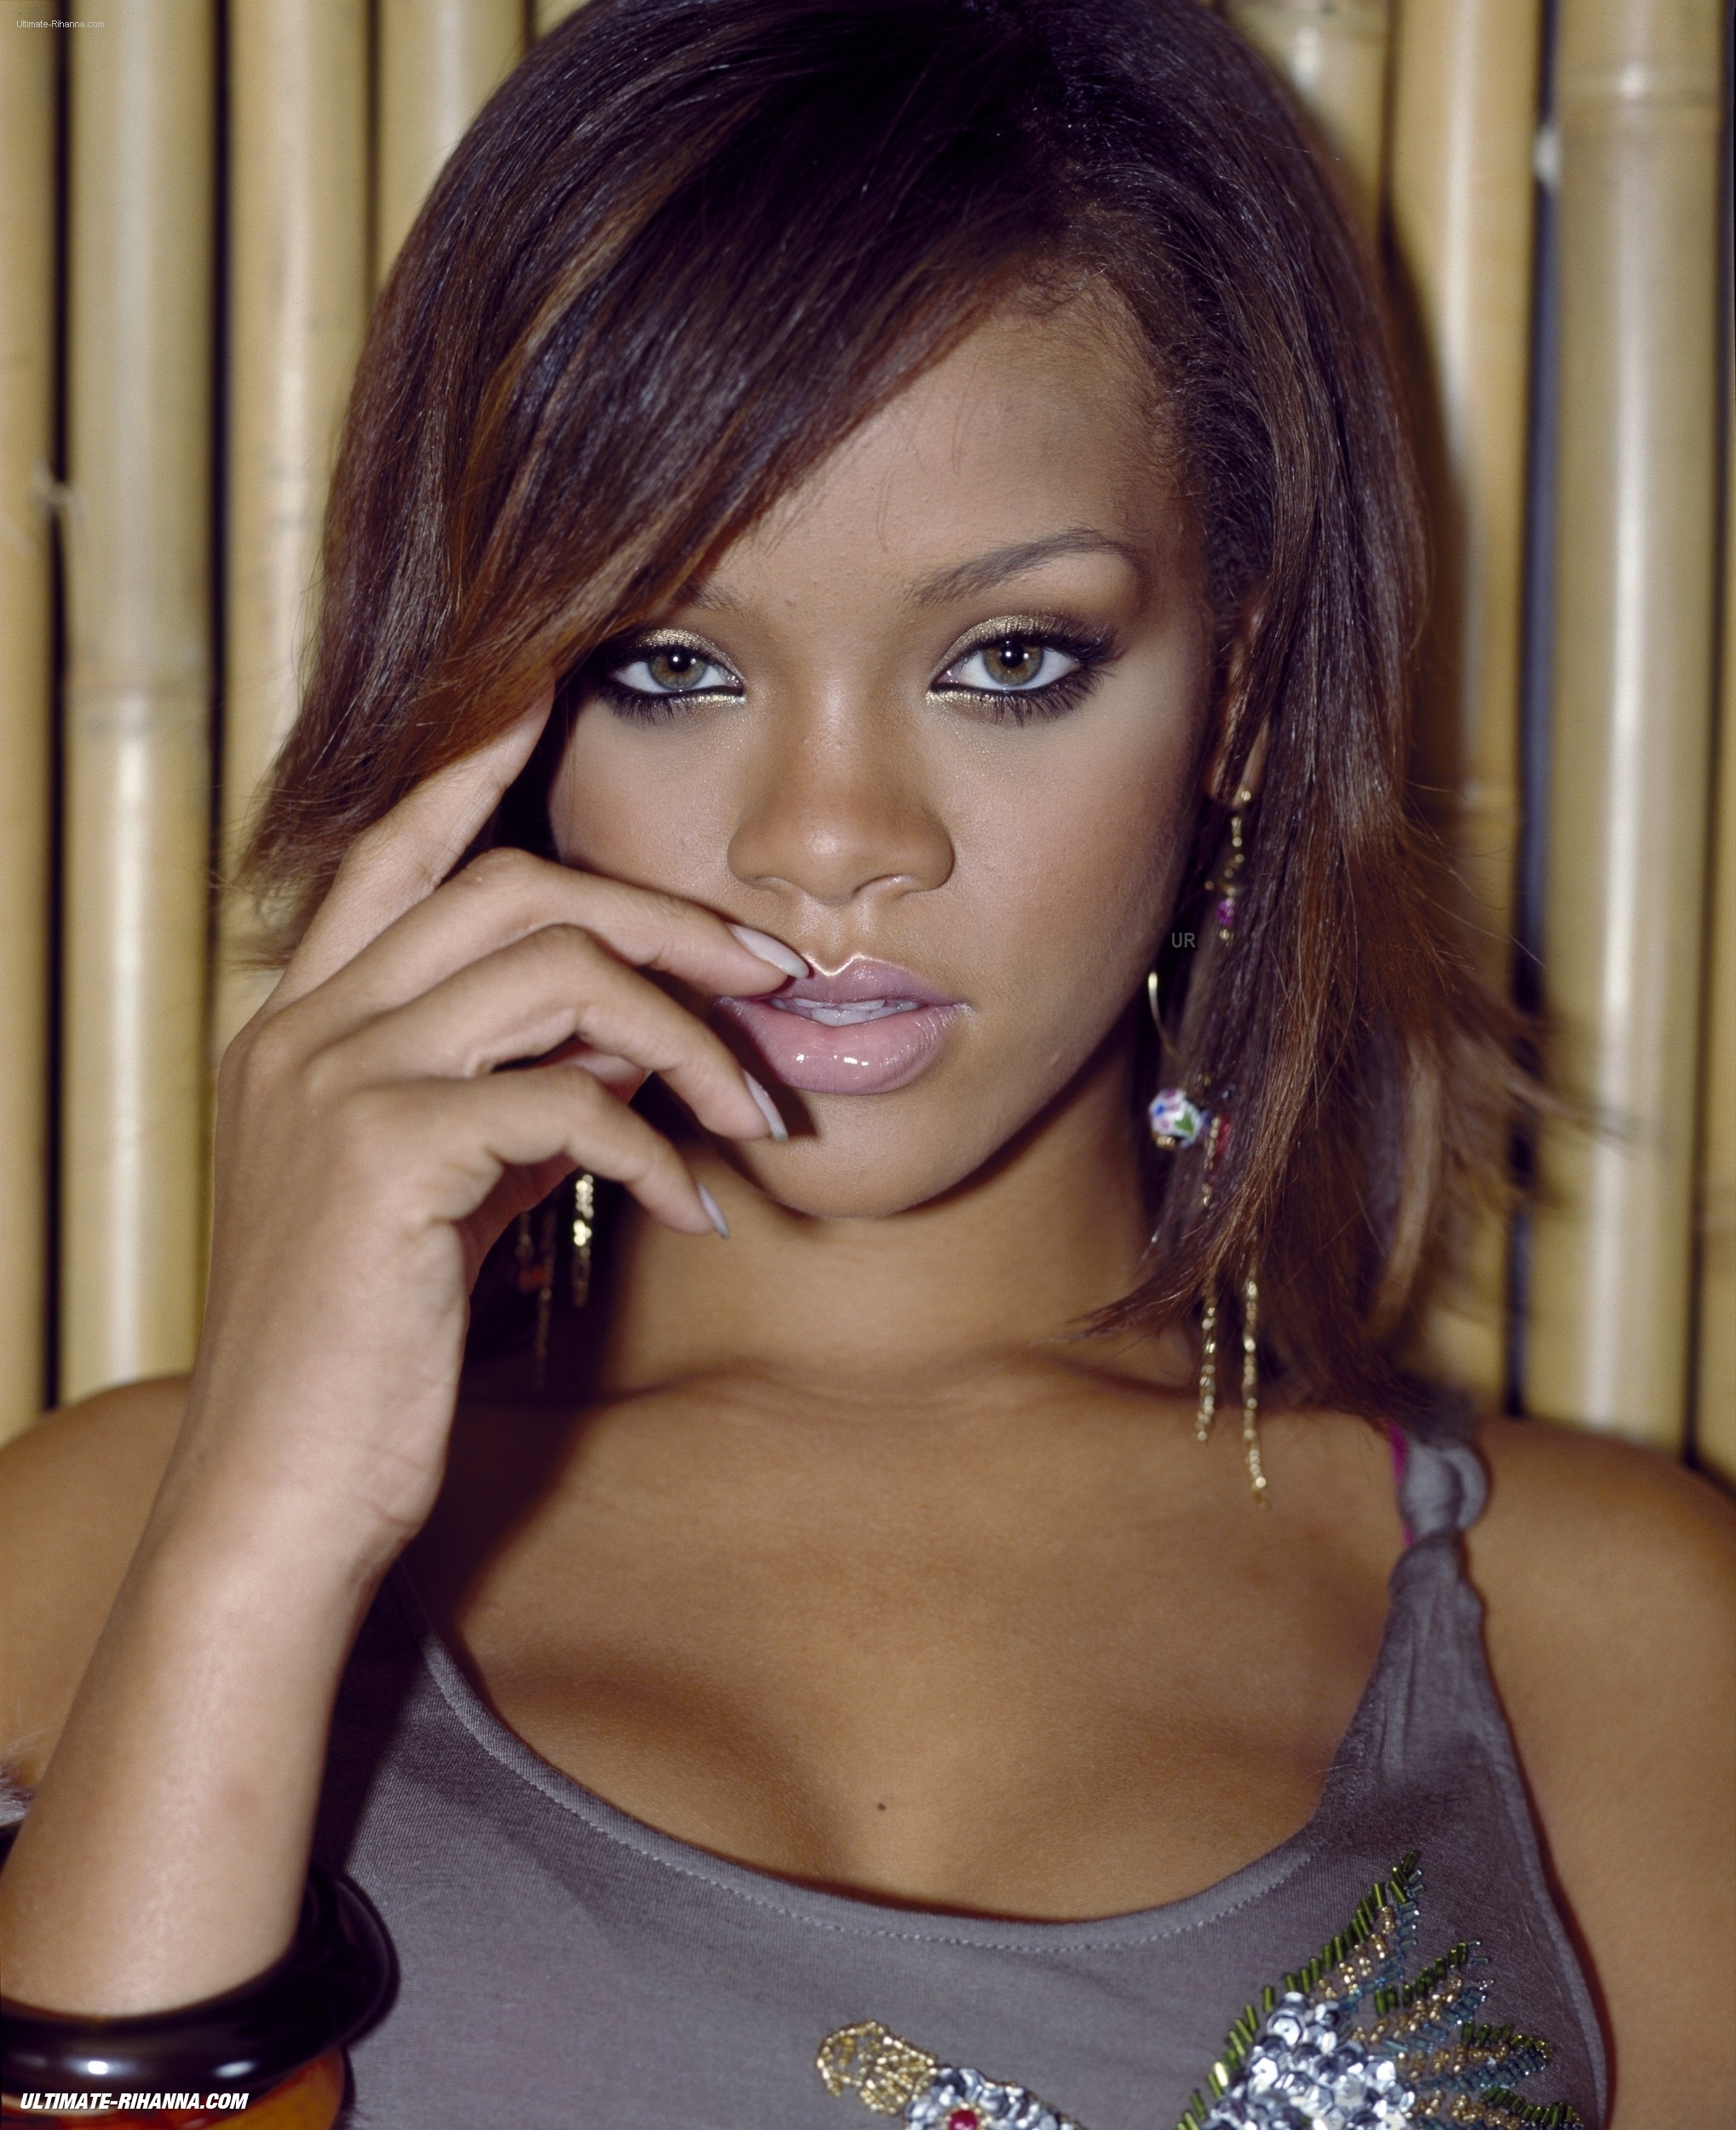 Rihanna - Rihanna Photo (12855835) - Fanpop